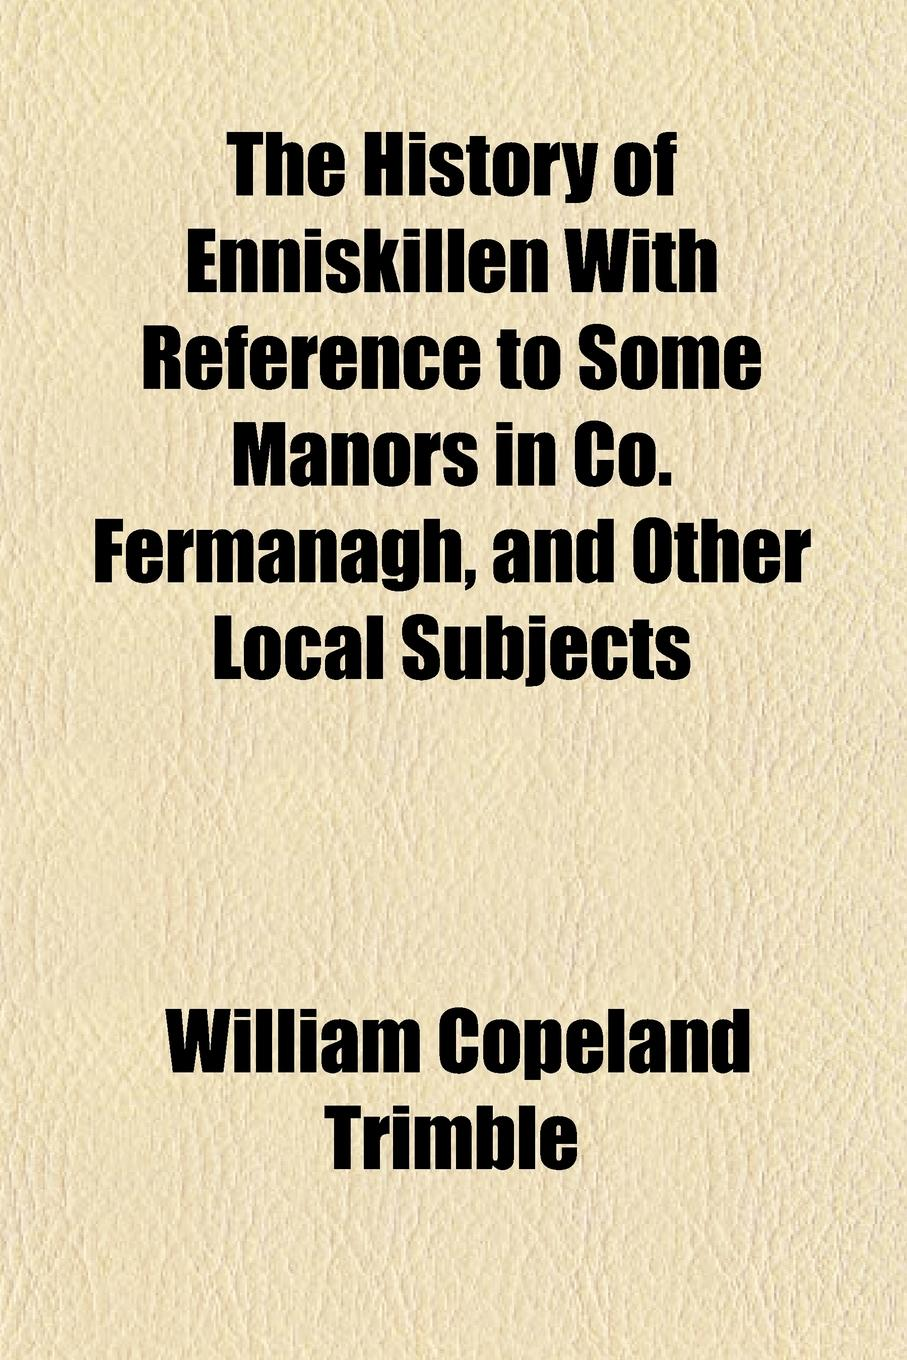 William Copeland Trimble The History of Enniskillen with Reference to Some Manors in Co. Fermanagh, and Other Local Subjects free shipping kayipht cm400ha1 24h can directly buy or contact the seller